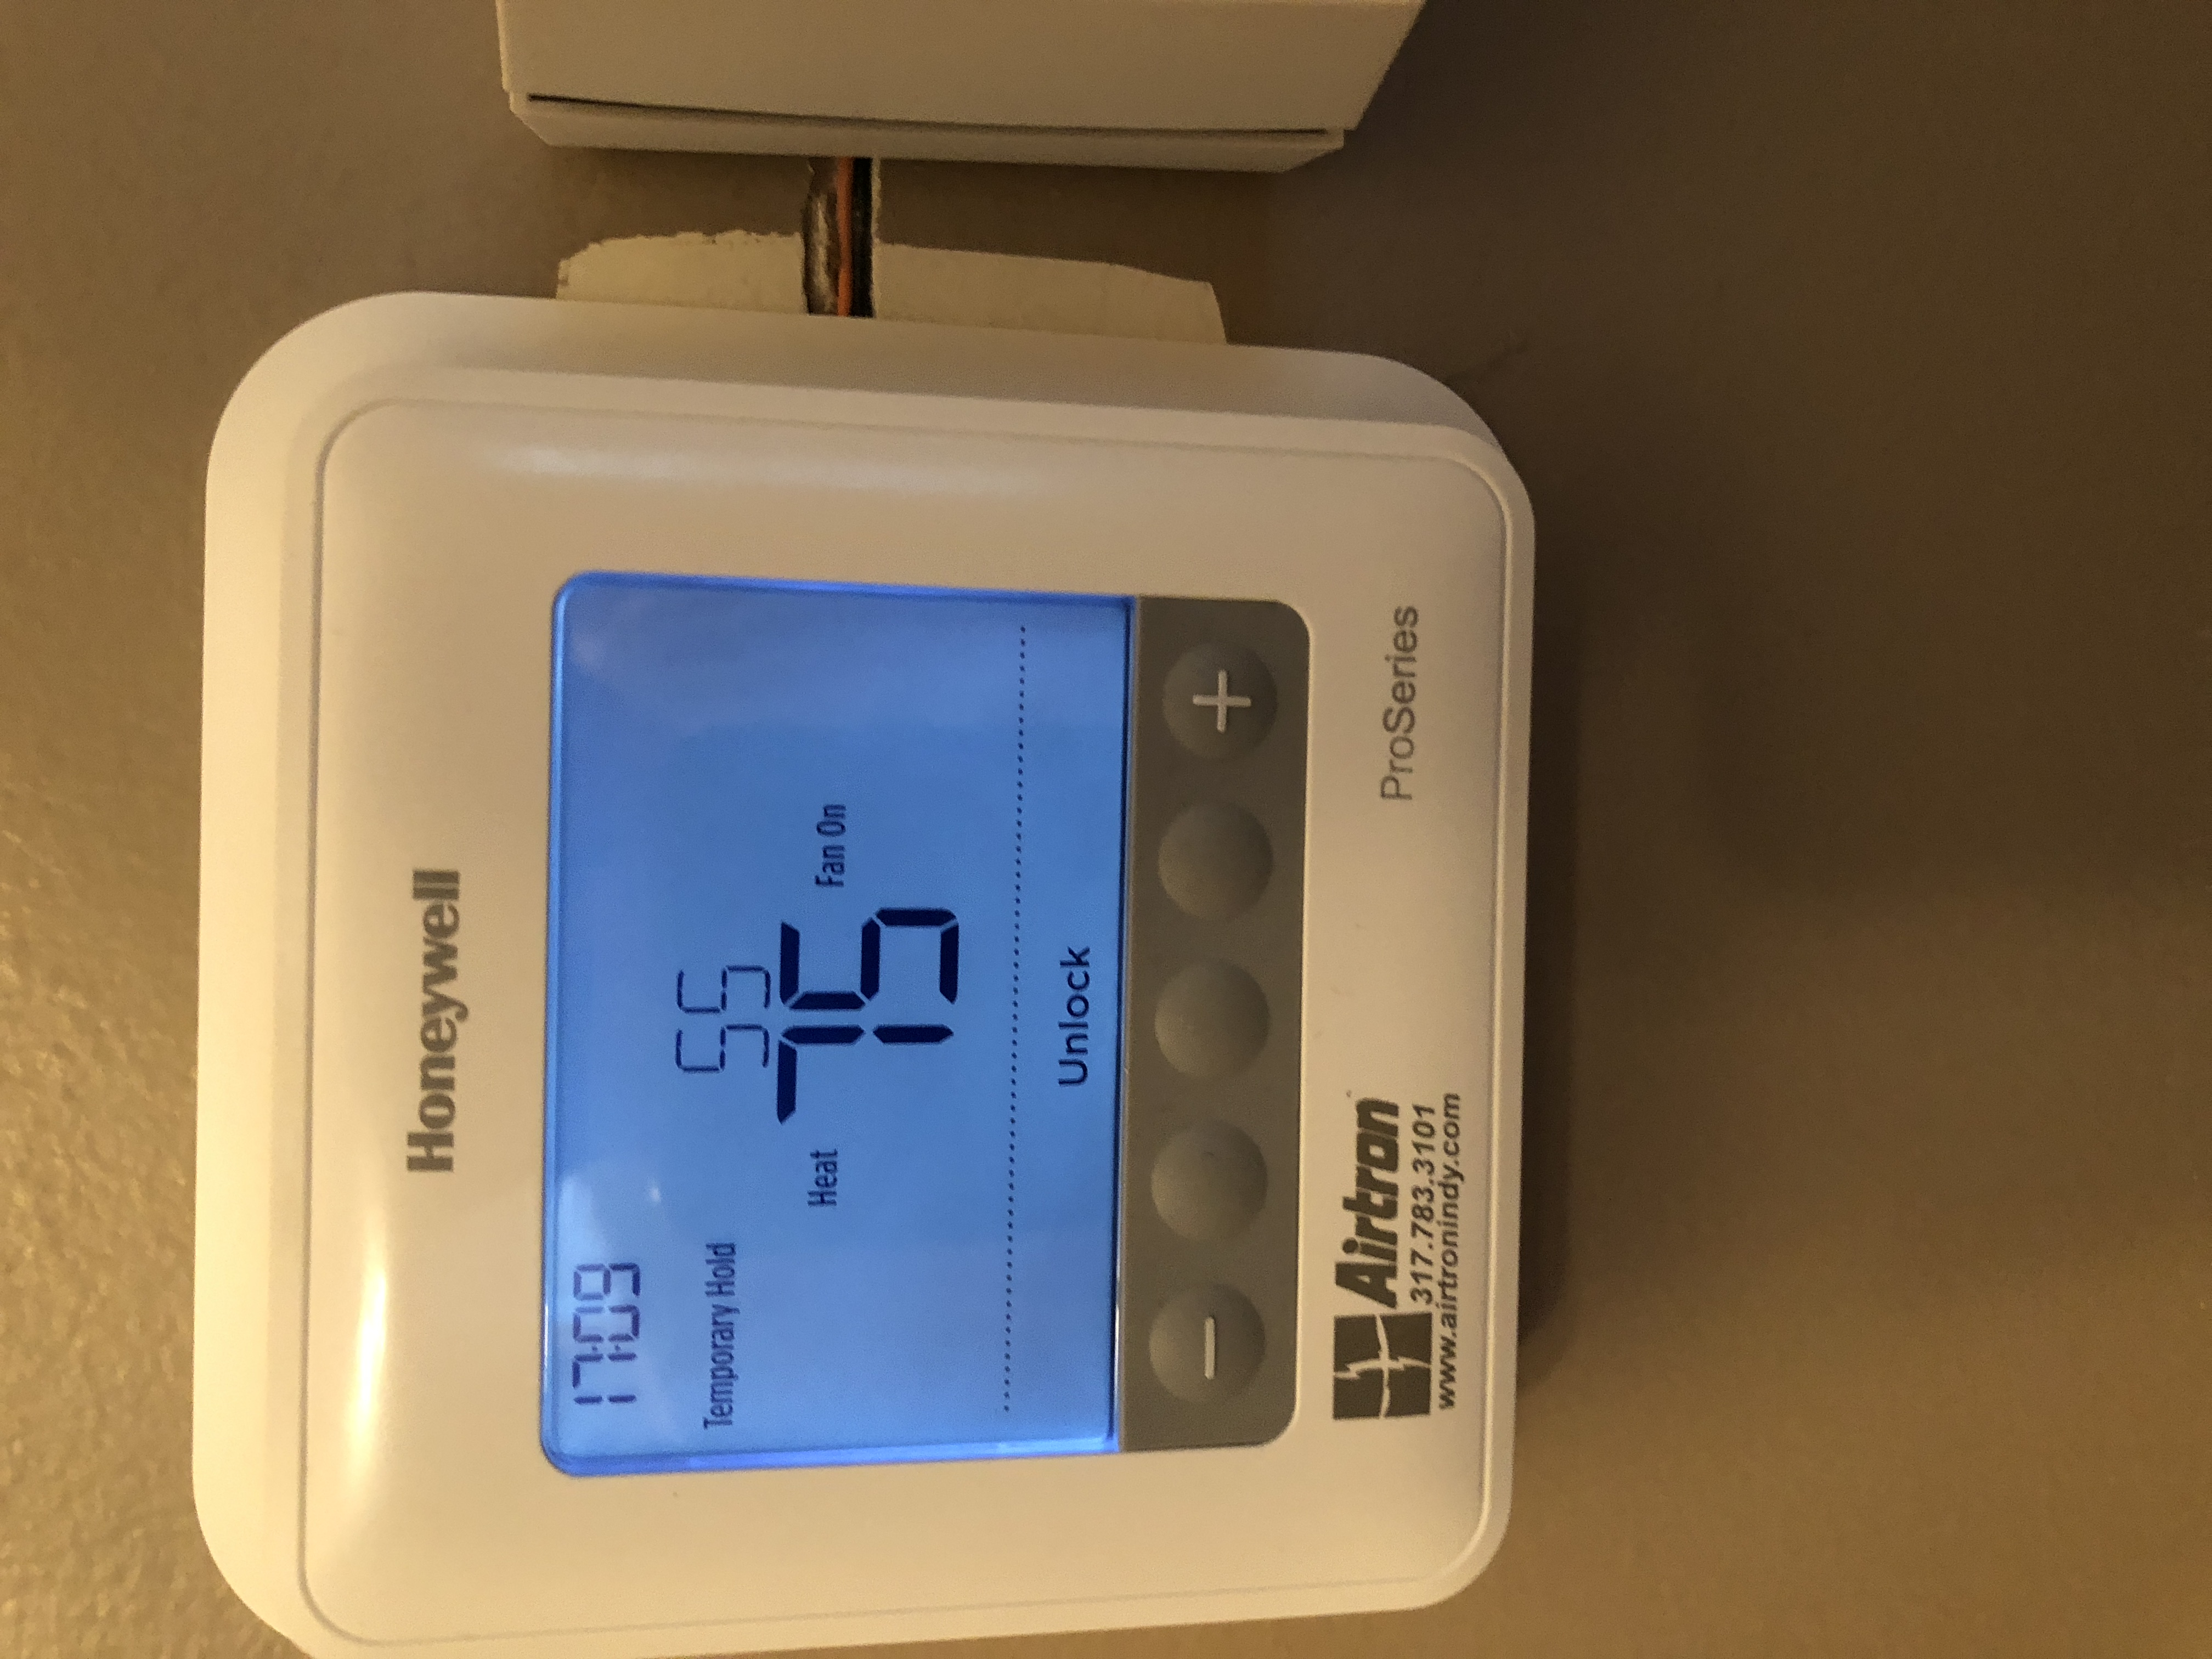 I have a Honeywell TH4210U2002 thermostat  When I returned